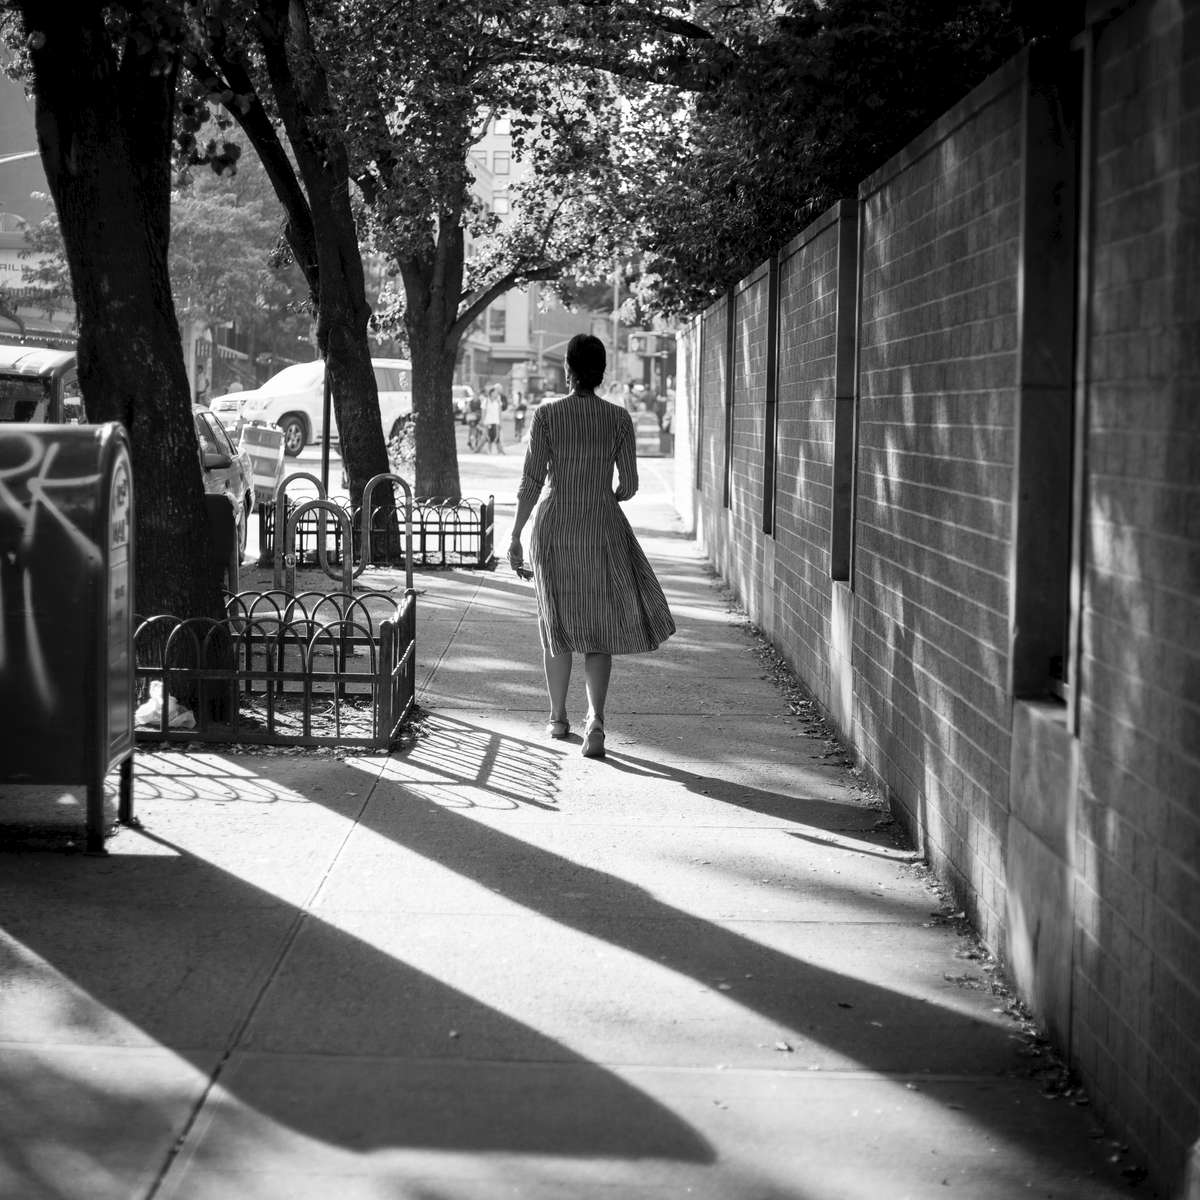 A woman walks west on 4th street on a hot summer day.